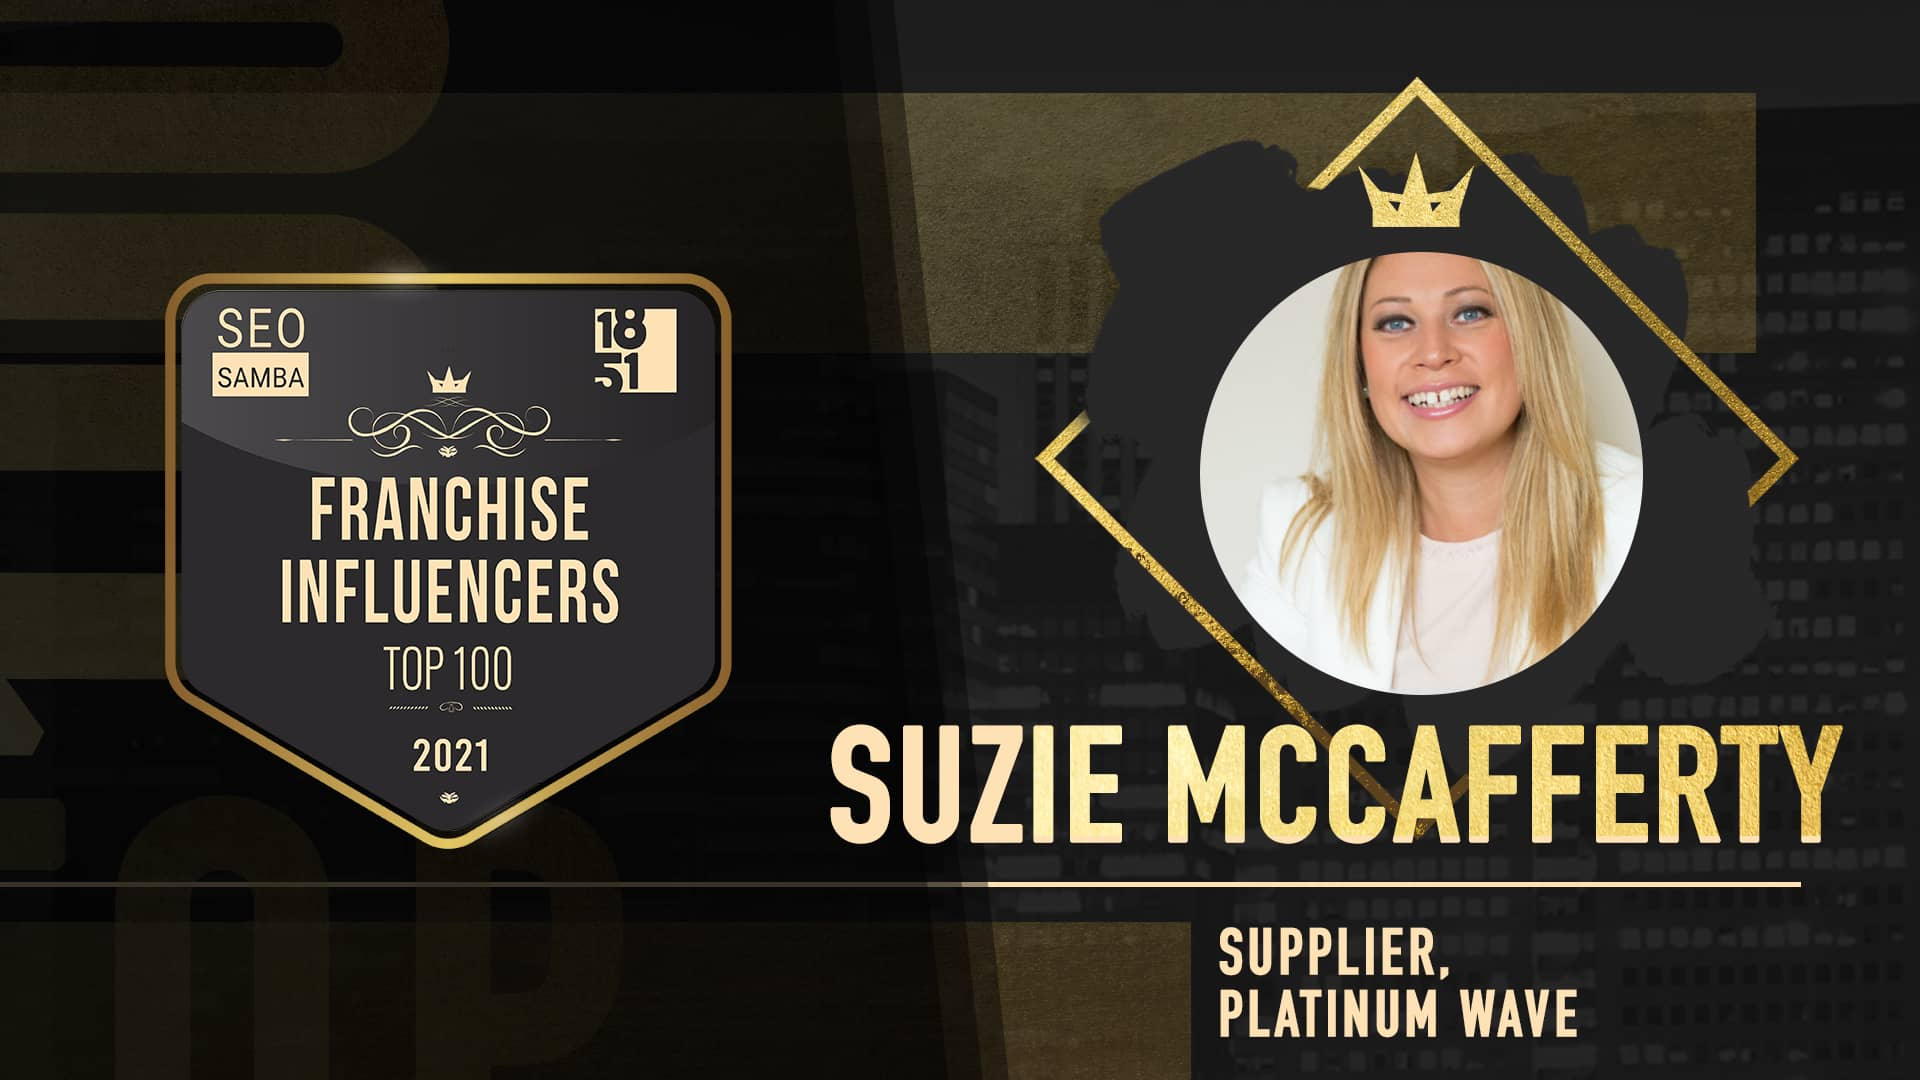 suzie-mccafferty-platinum-wave